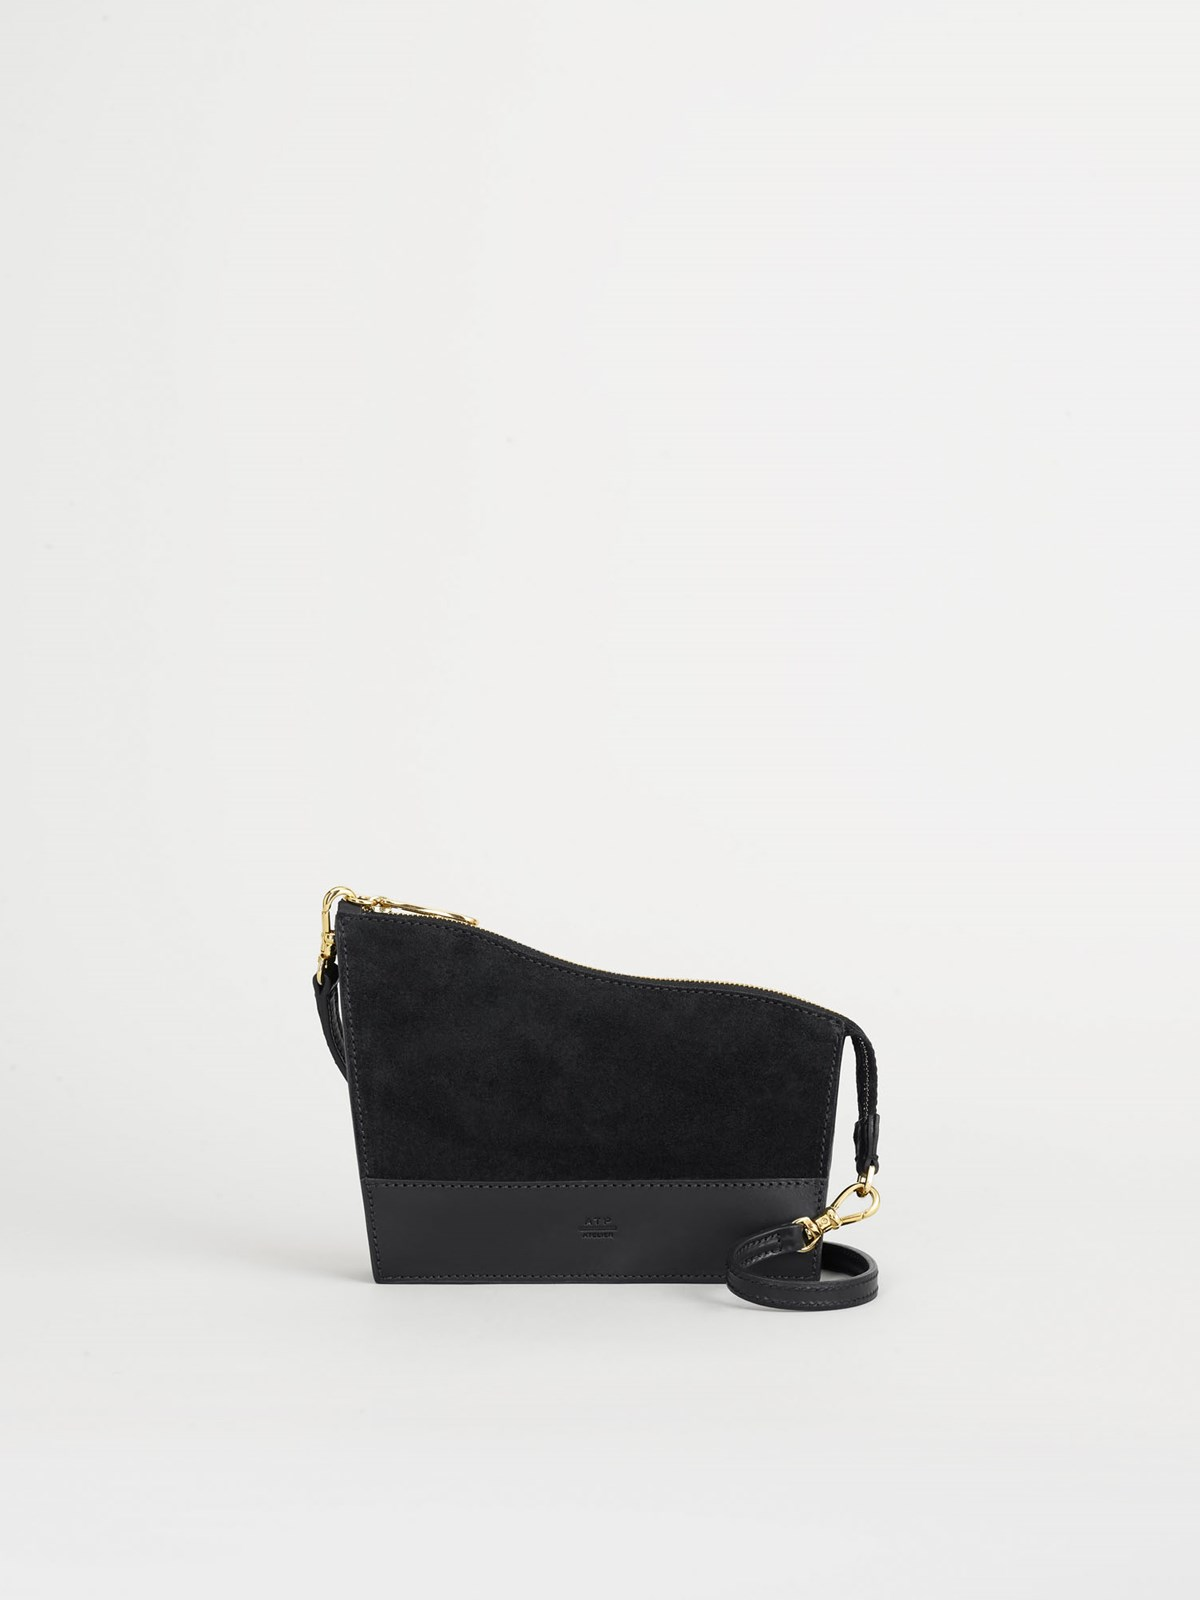 Diso Black Baguette Bag